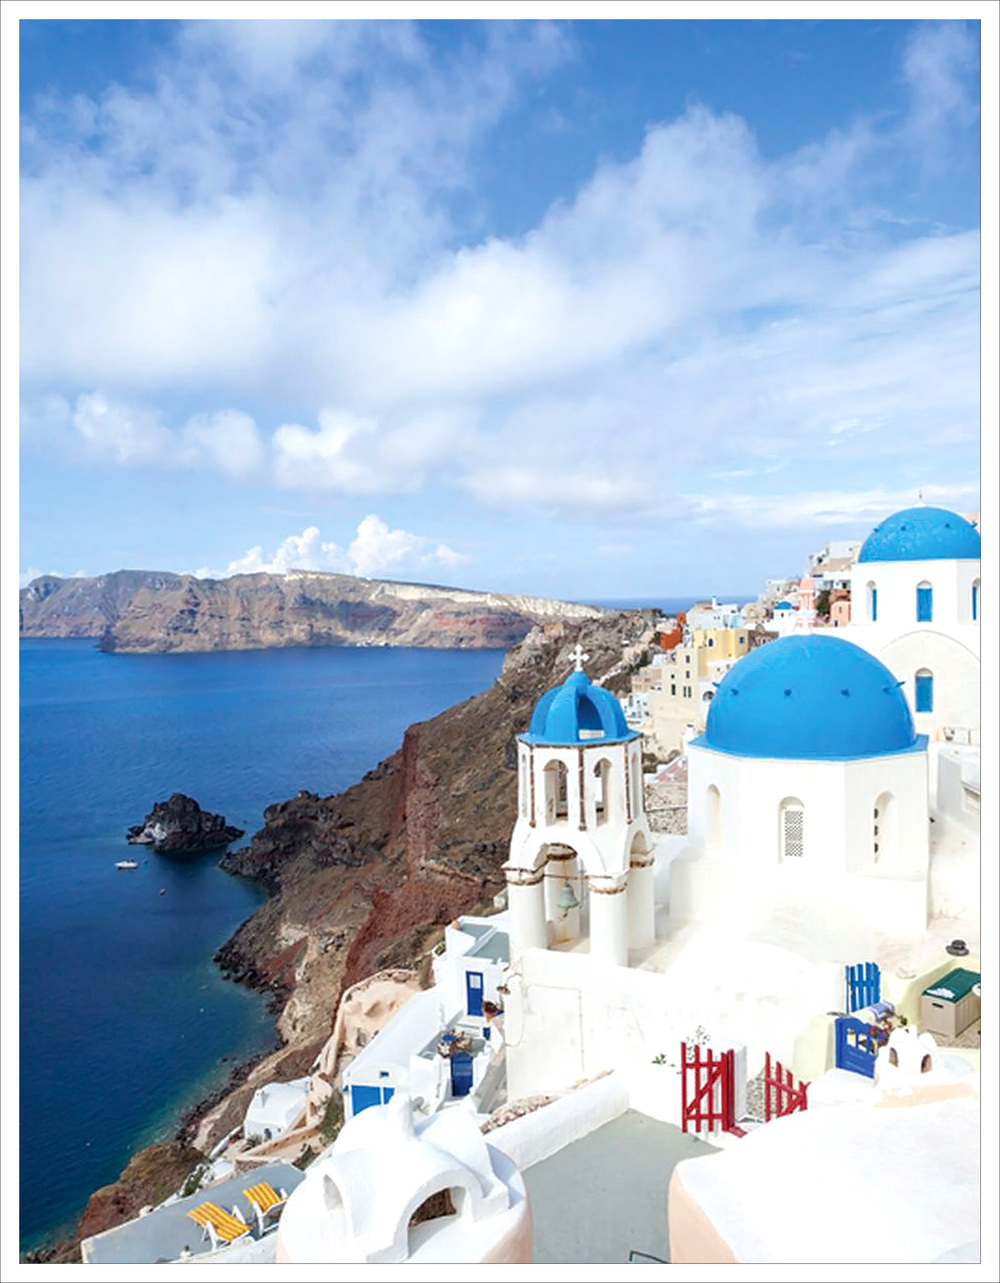 Santorini is no secret and draws crowds for most of the year, yet it wears its tourism well and its offerings make it worth the bustle. The island's intrigue reaches deep into the past, with the fascinating Minoan site of Akrotiri and the gorgeous traditional hilltop village of Oia. It also glides effortlessly into the future with accomplished artists, excellent wineries, a unique brewery, and some of the Cyclades finest dining experiences. The sandy, multicolored beaches are simply the icing on the cake.